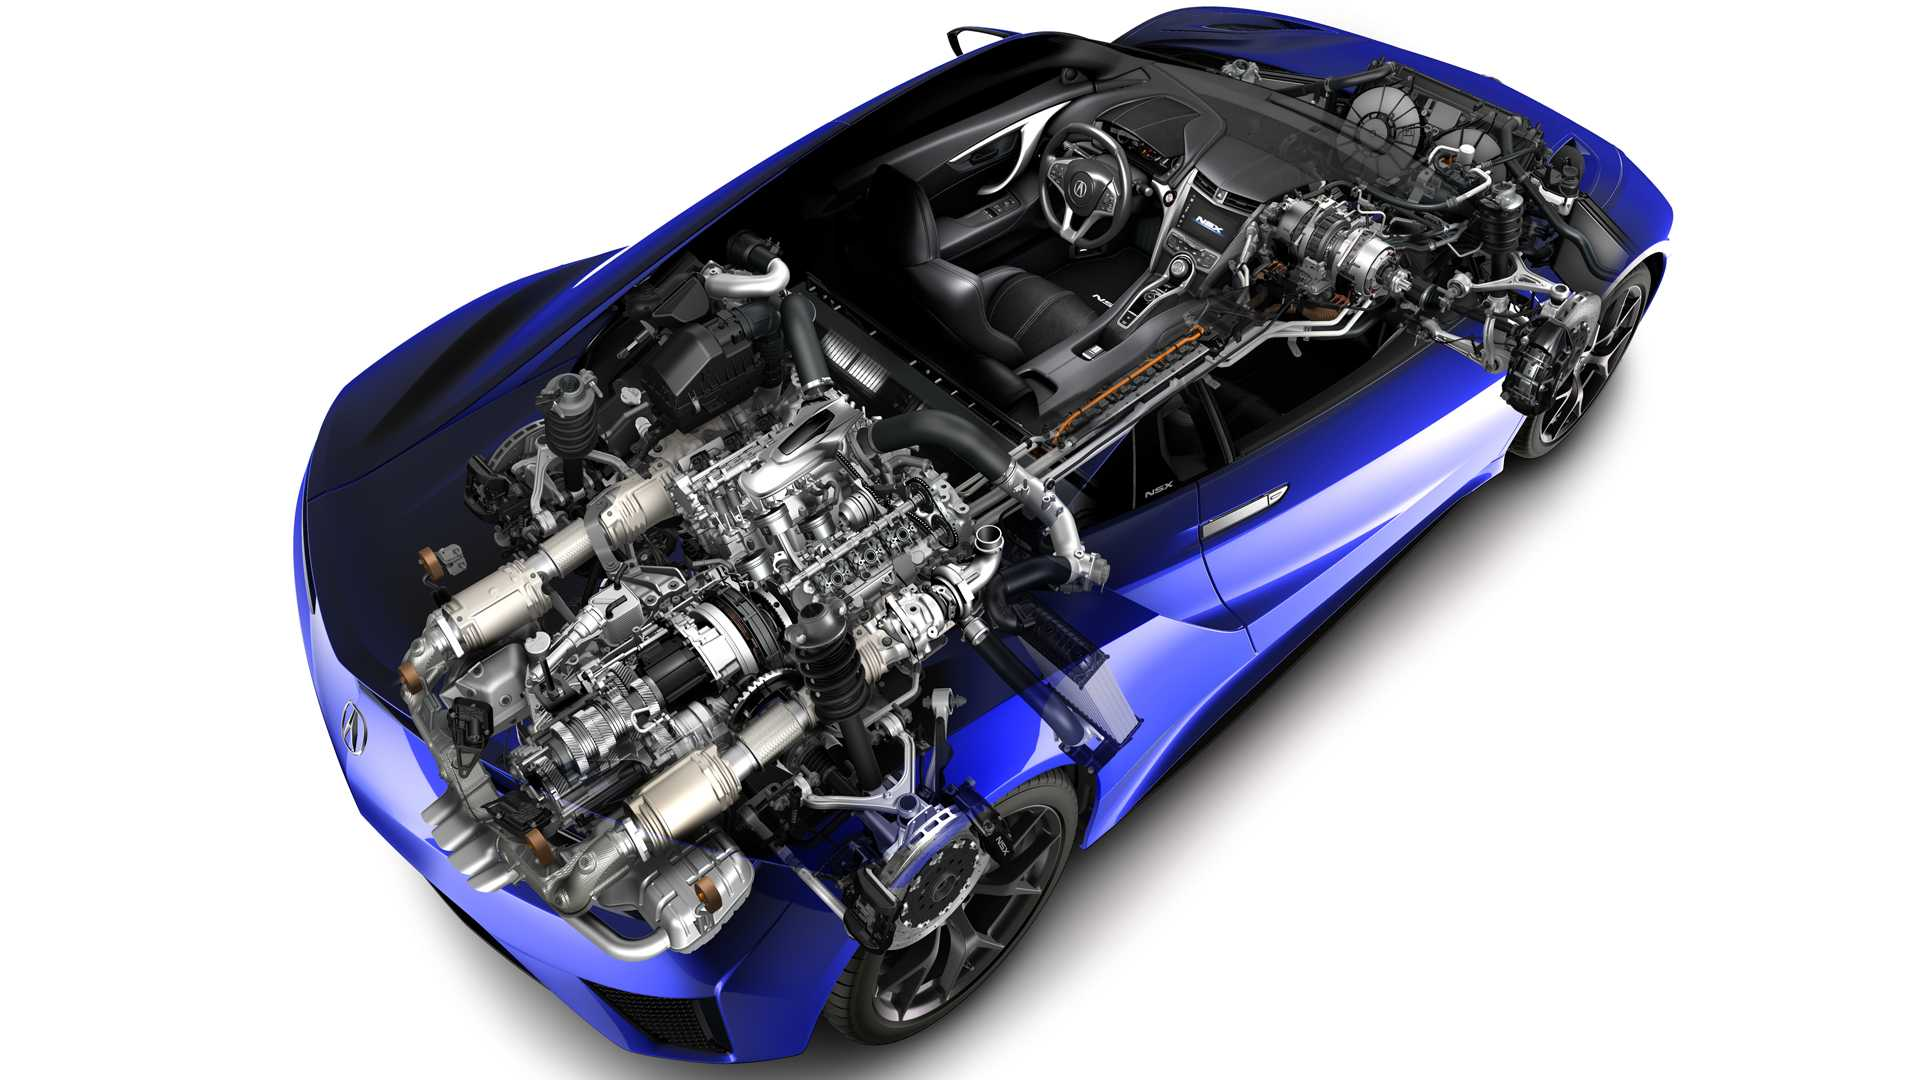 Acura Shows The Science Behind Making The Nsx S Twin Turbo V6